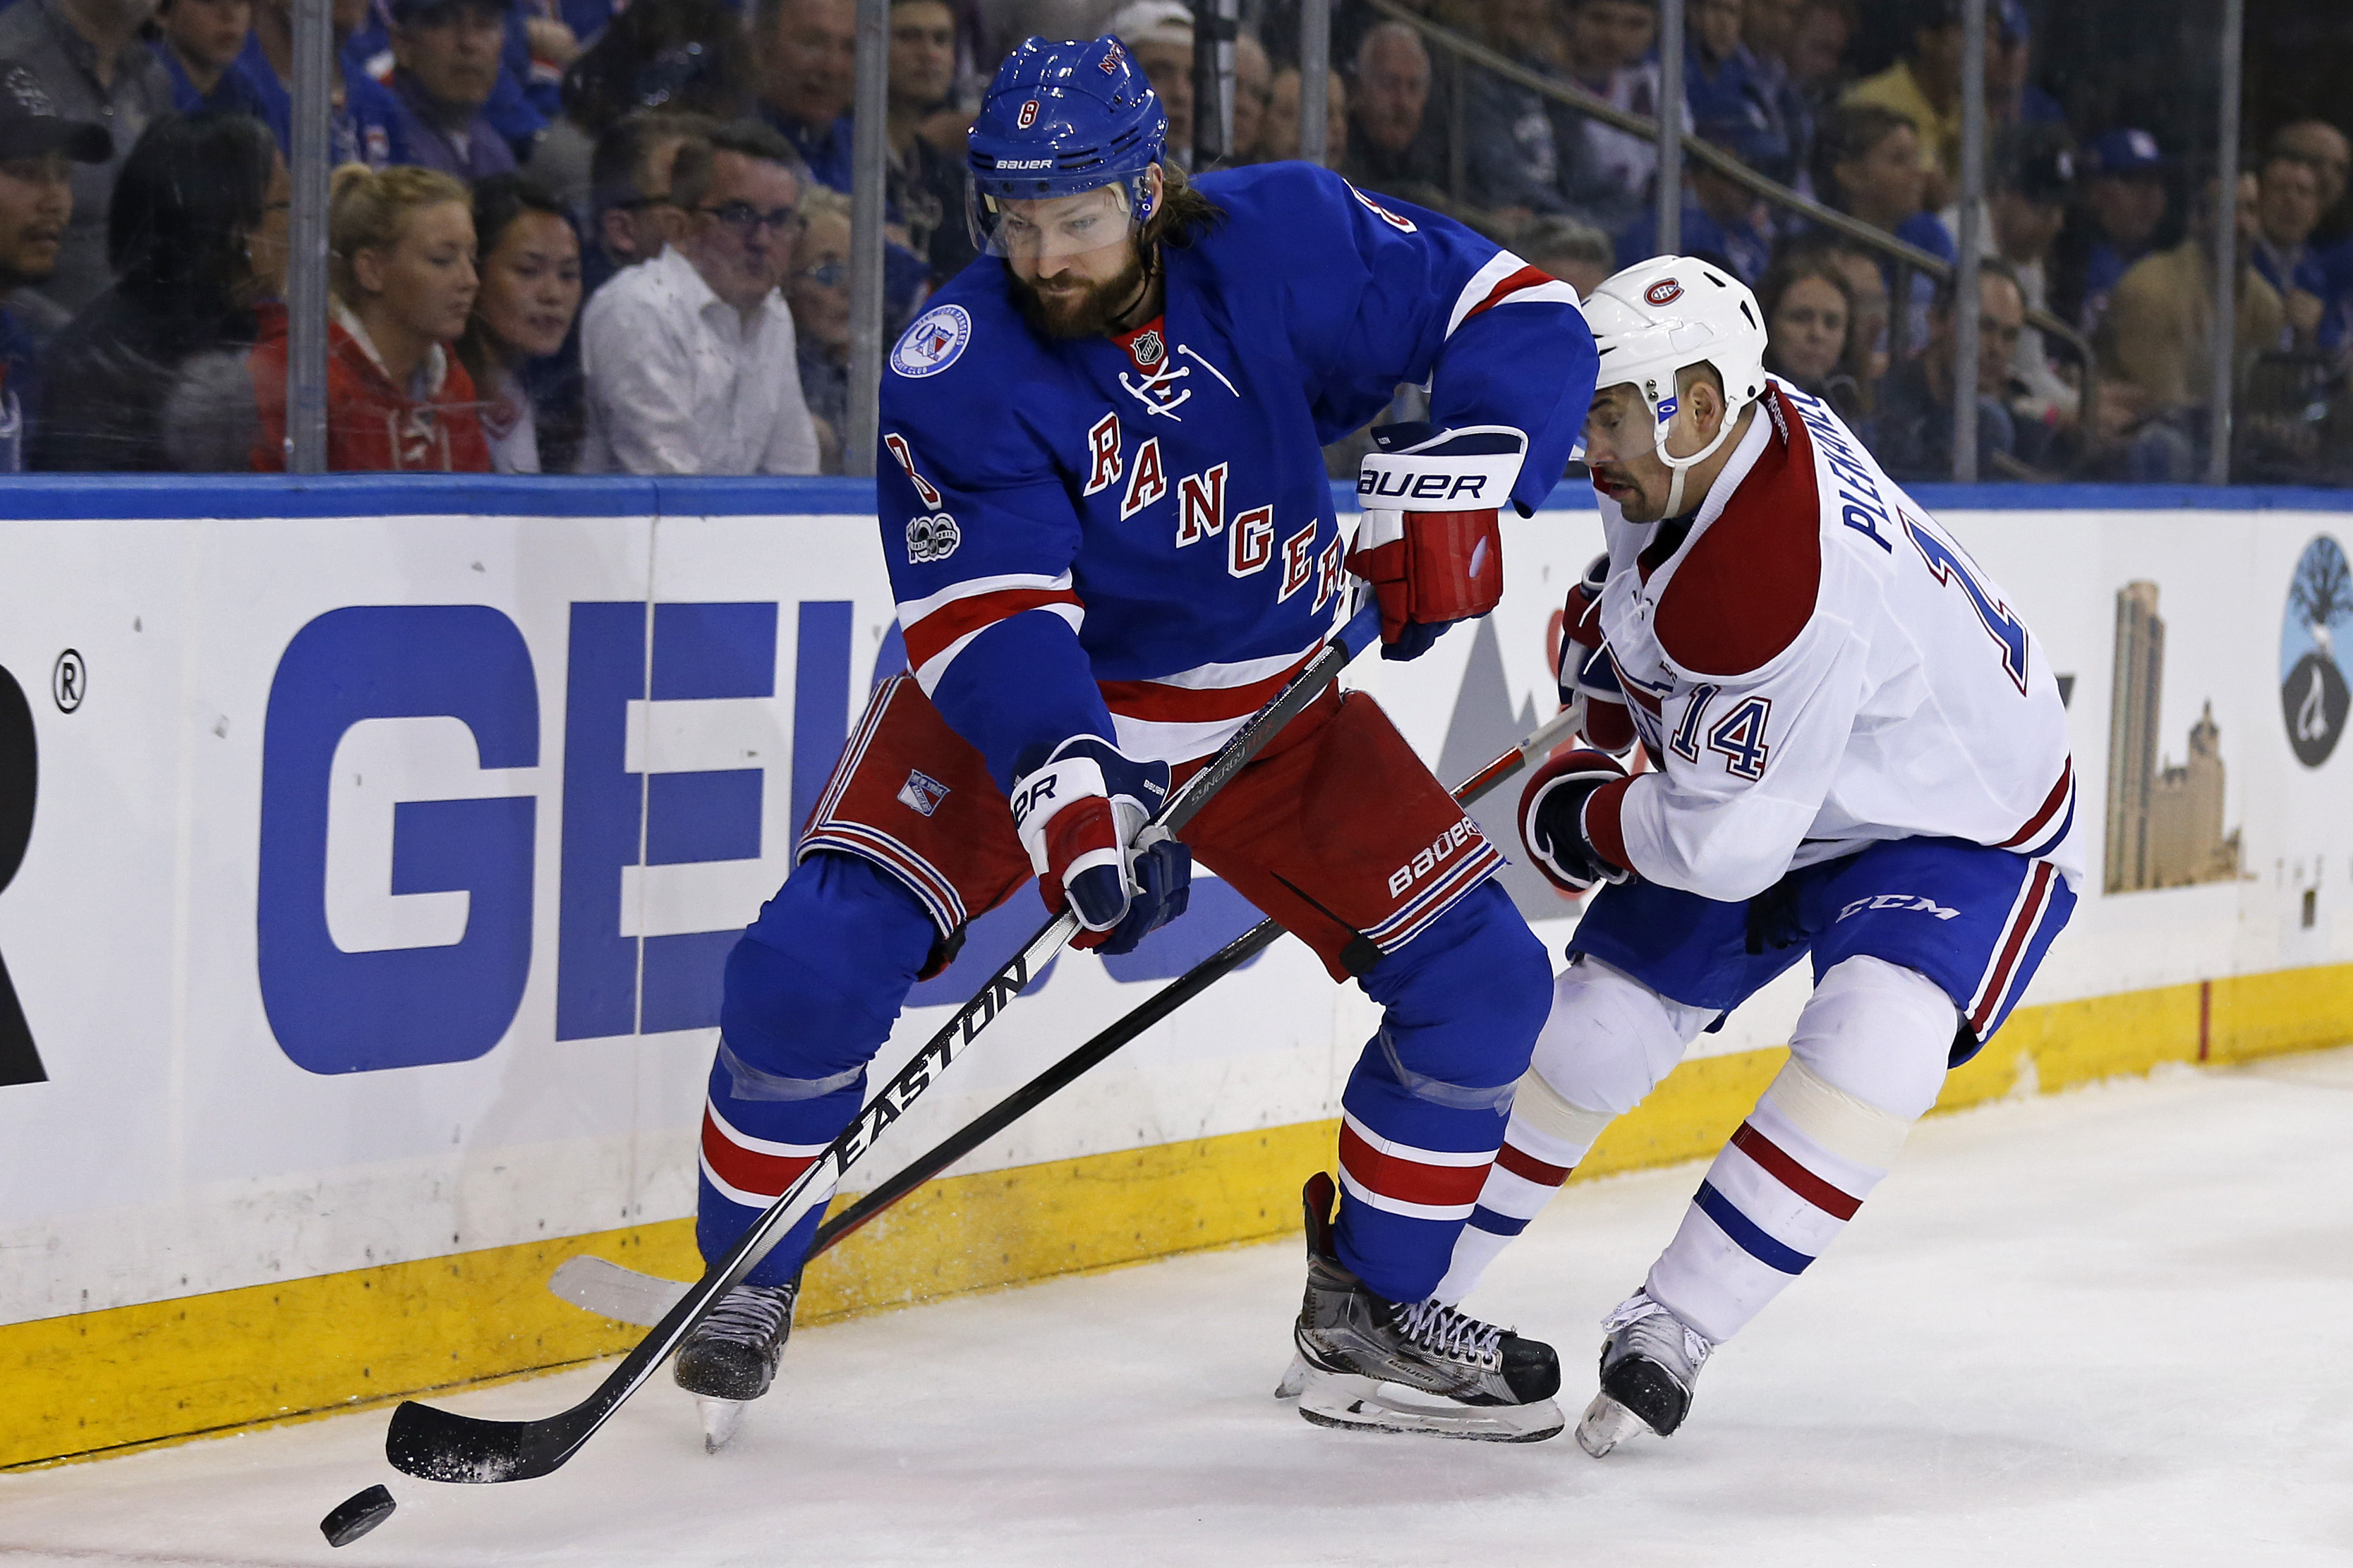 10016888-nhl-stanley-cup-playoffs-montreal-canadiens-at-new-york-rangers